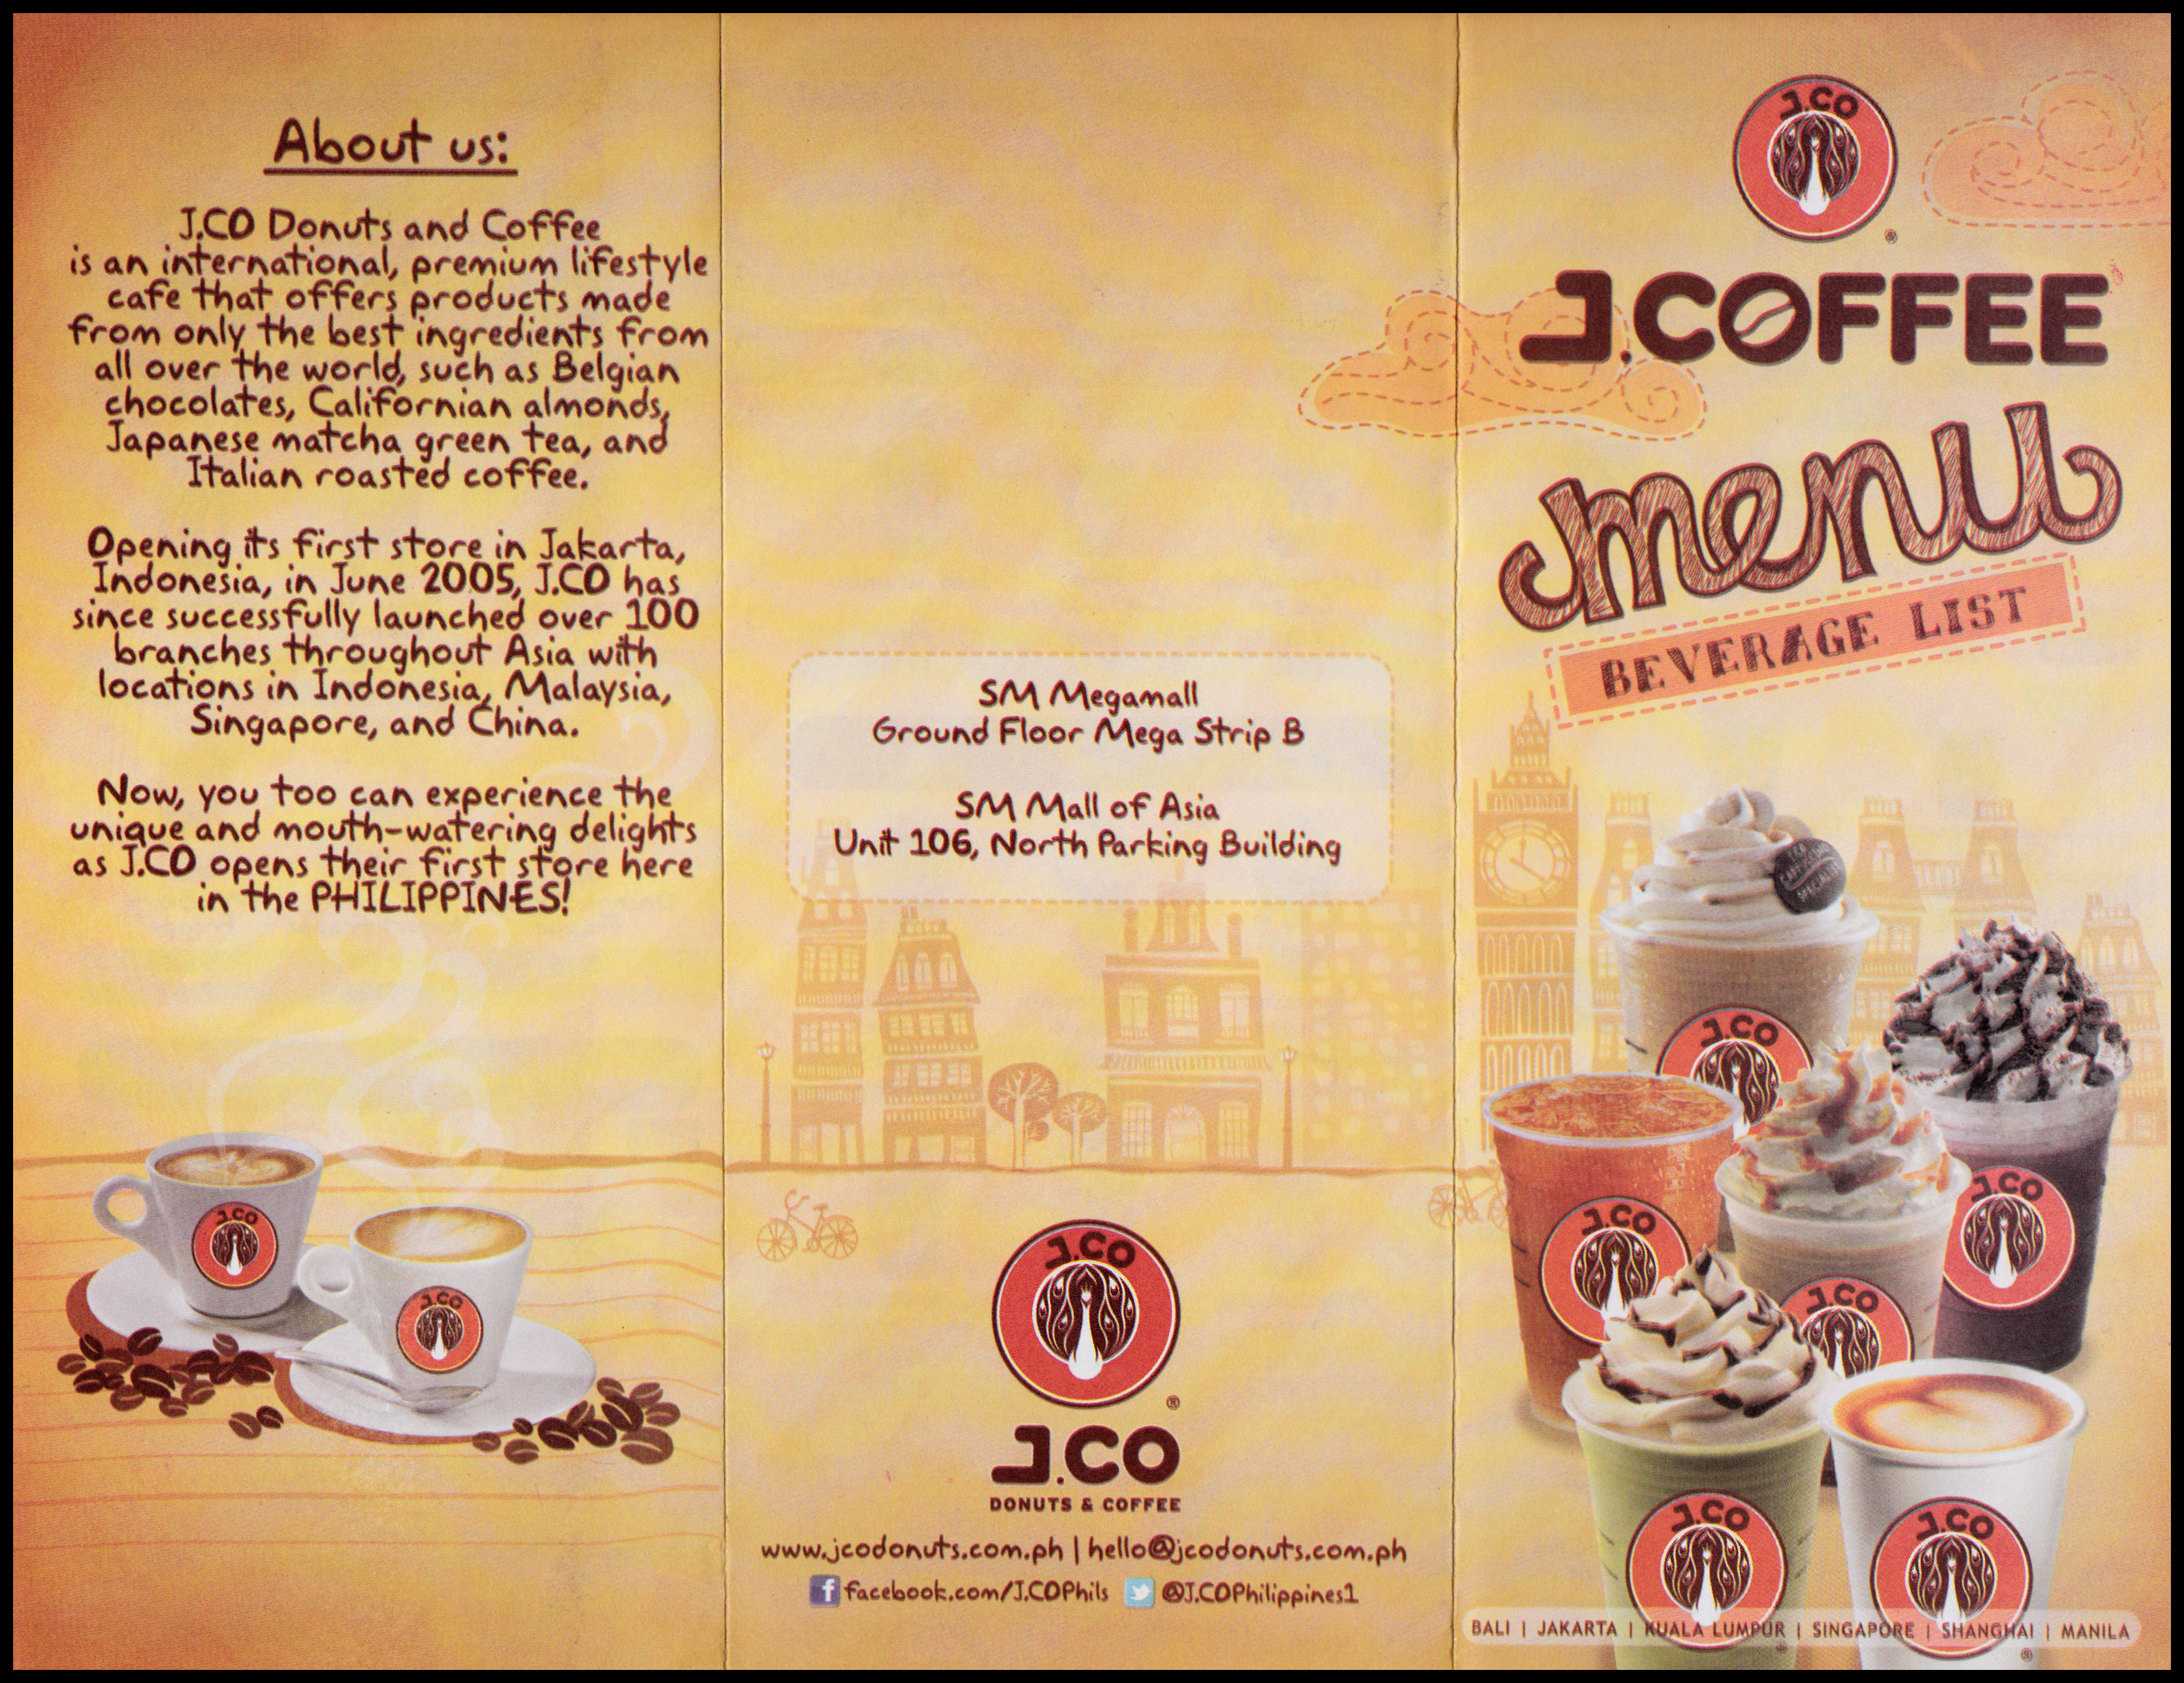 j co donuts coffee history The latest tweets from jco donuts & coffee (@jcohongkong) j co donuts &  coffee is a lifestyle cafe retailer in asia branches: -wan chai -tseung kwan o.